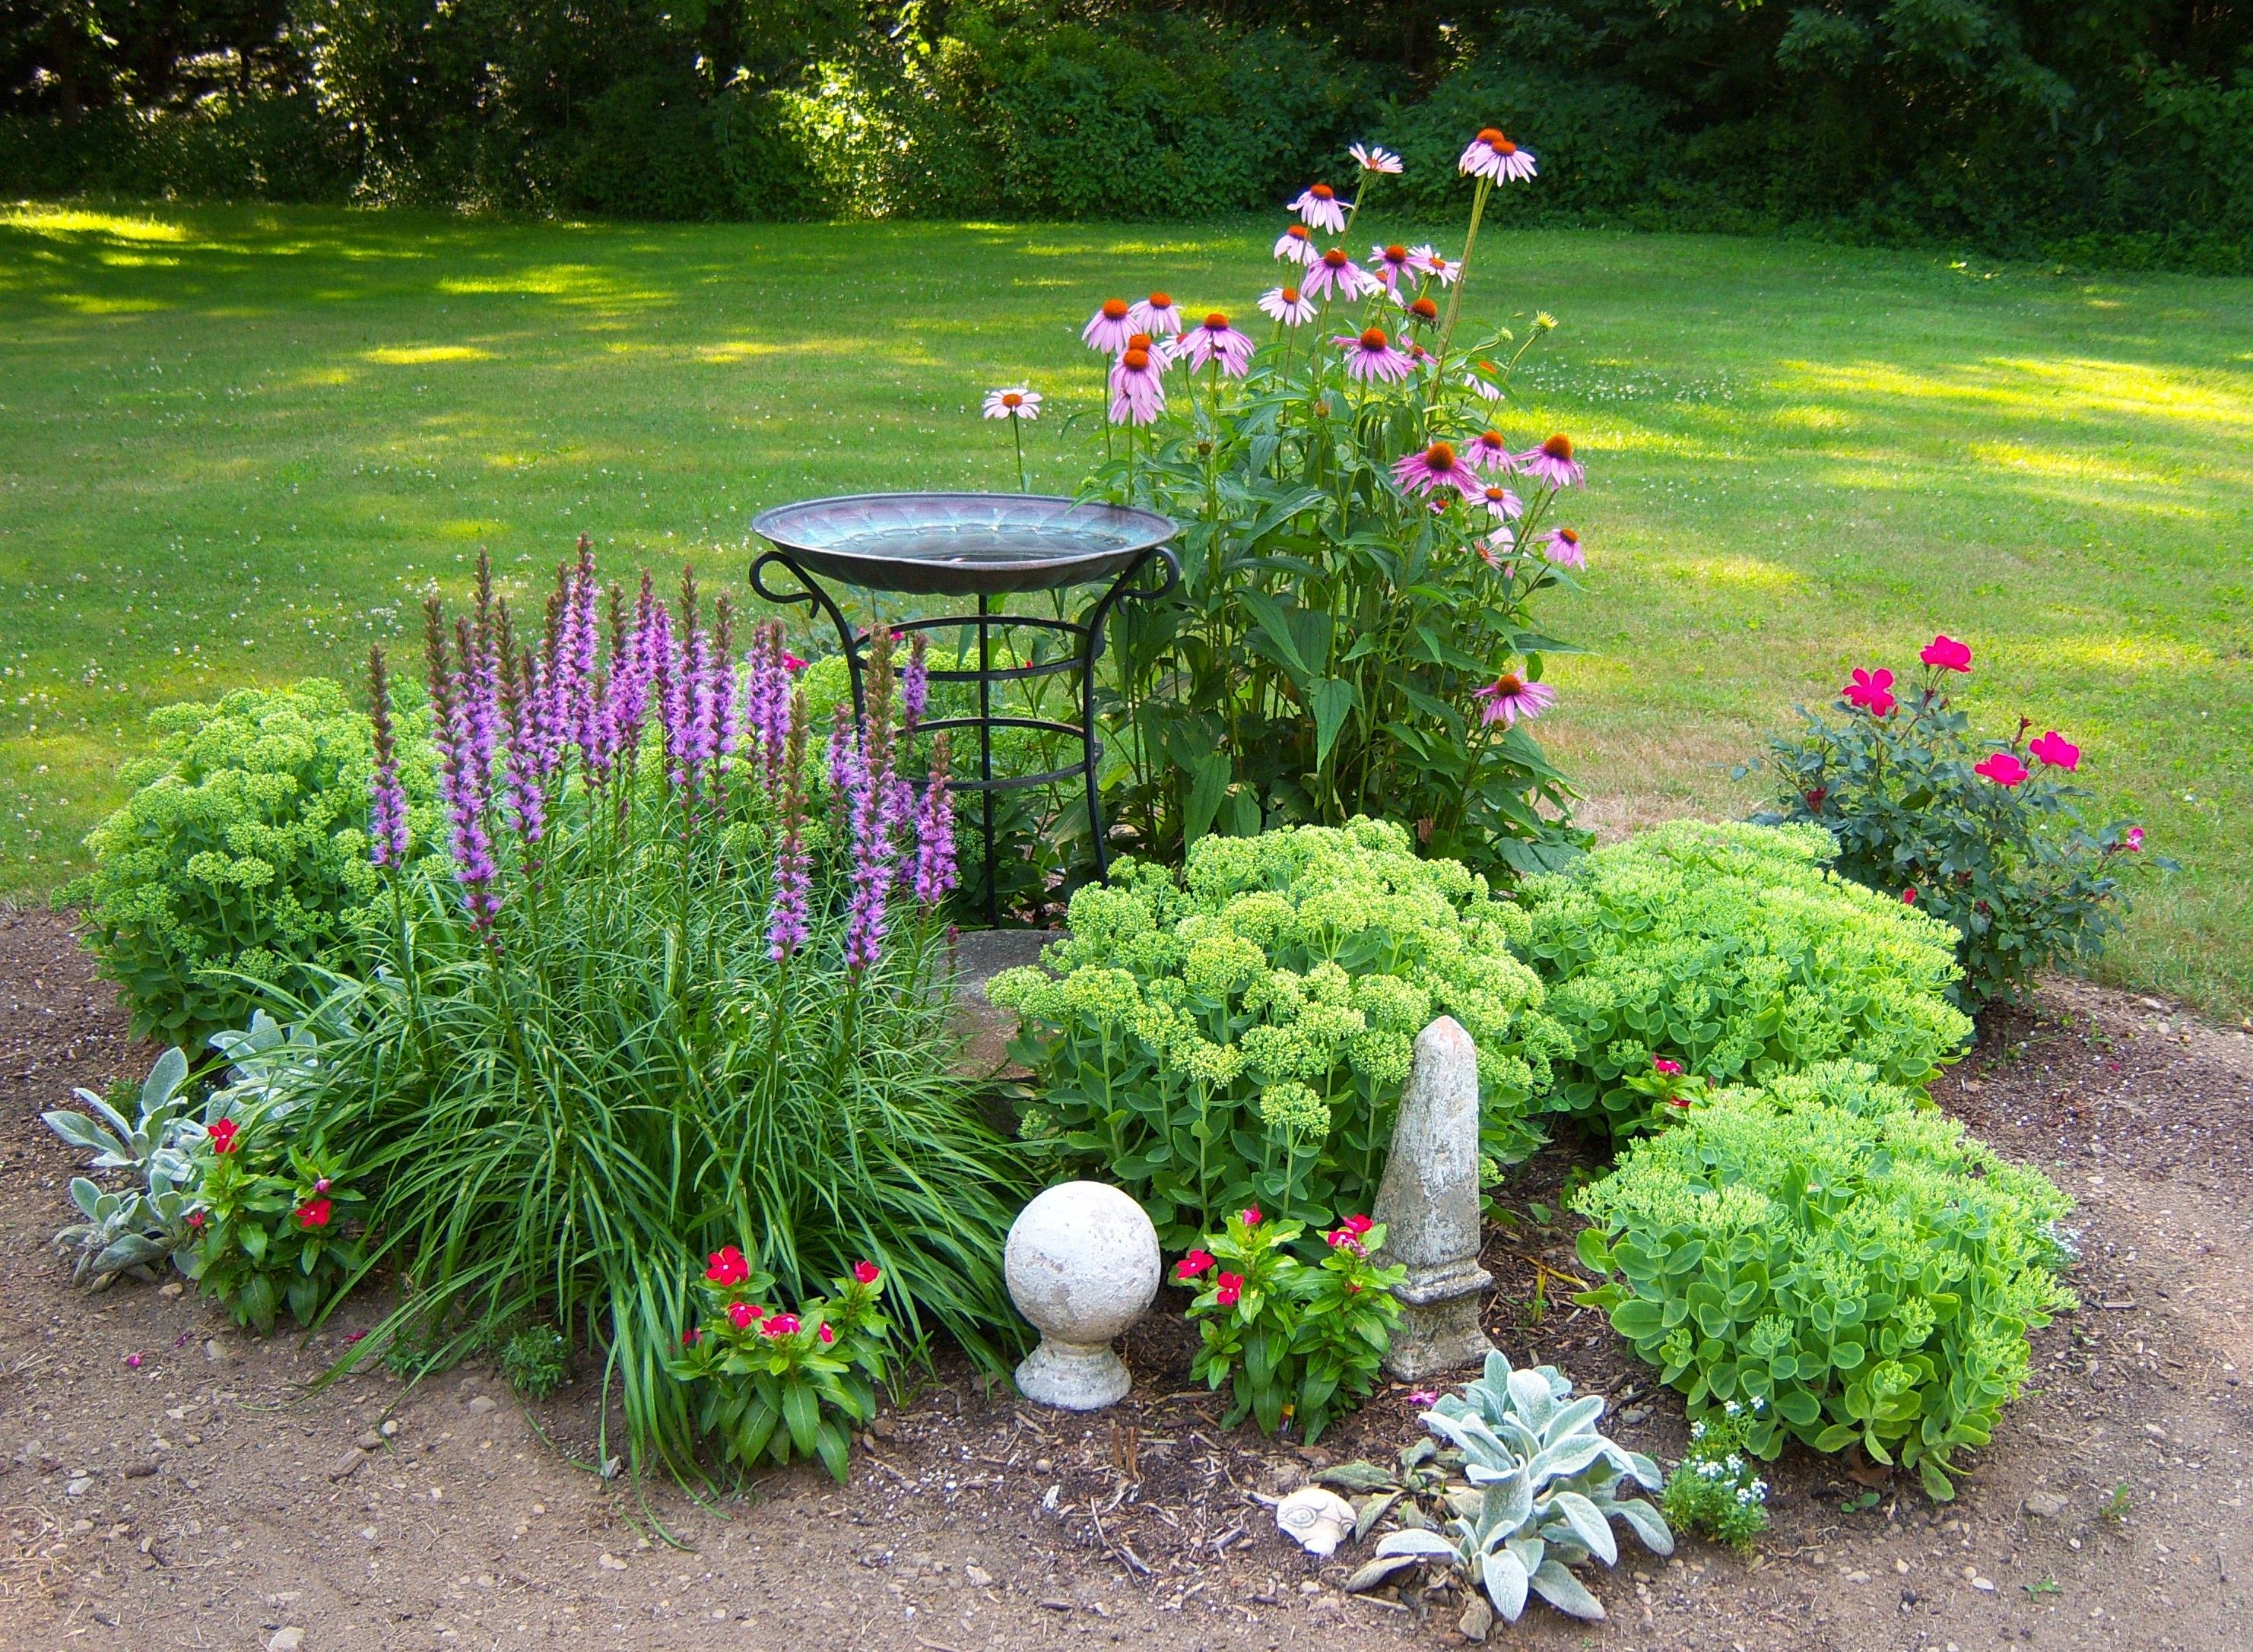 Garden designs with bridges and wishing wells landscaping ideas - How I Disguised My Ugly Septic Tank Cover It S Under The Bird Bath Backyard Landscapinglandscaping Ideasbackyard